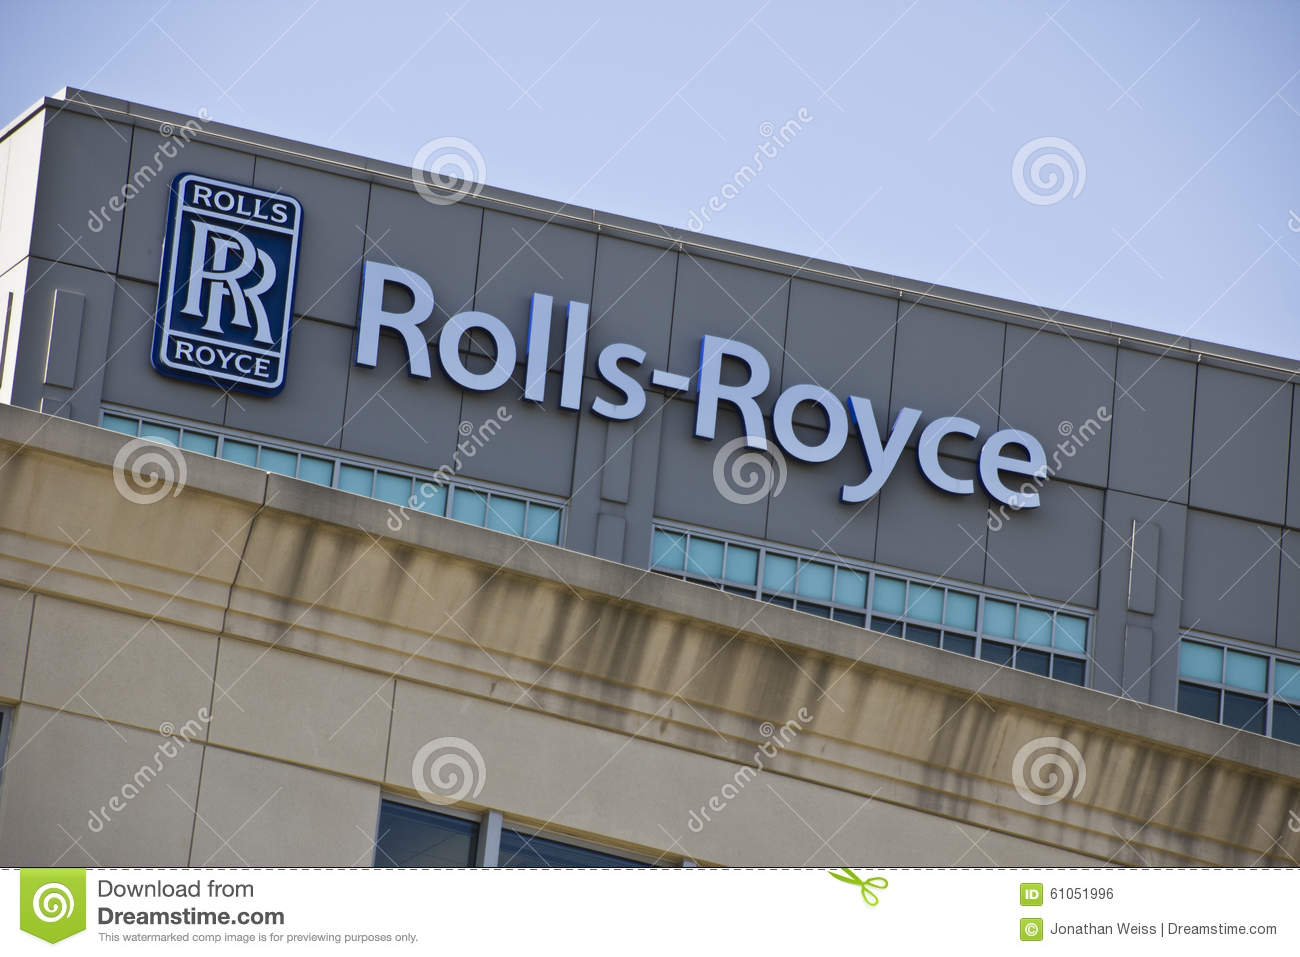 CIRCA OCTOBER 2015: Rolls-Royce Corporation